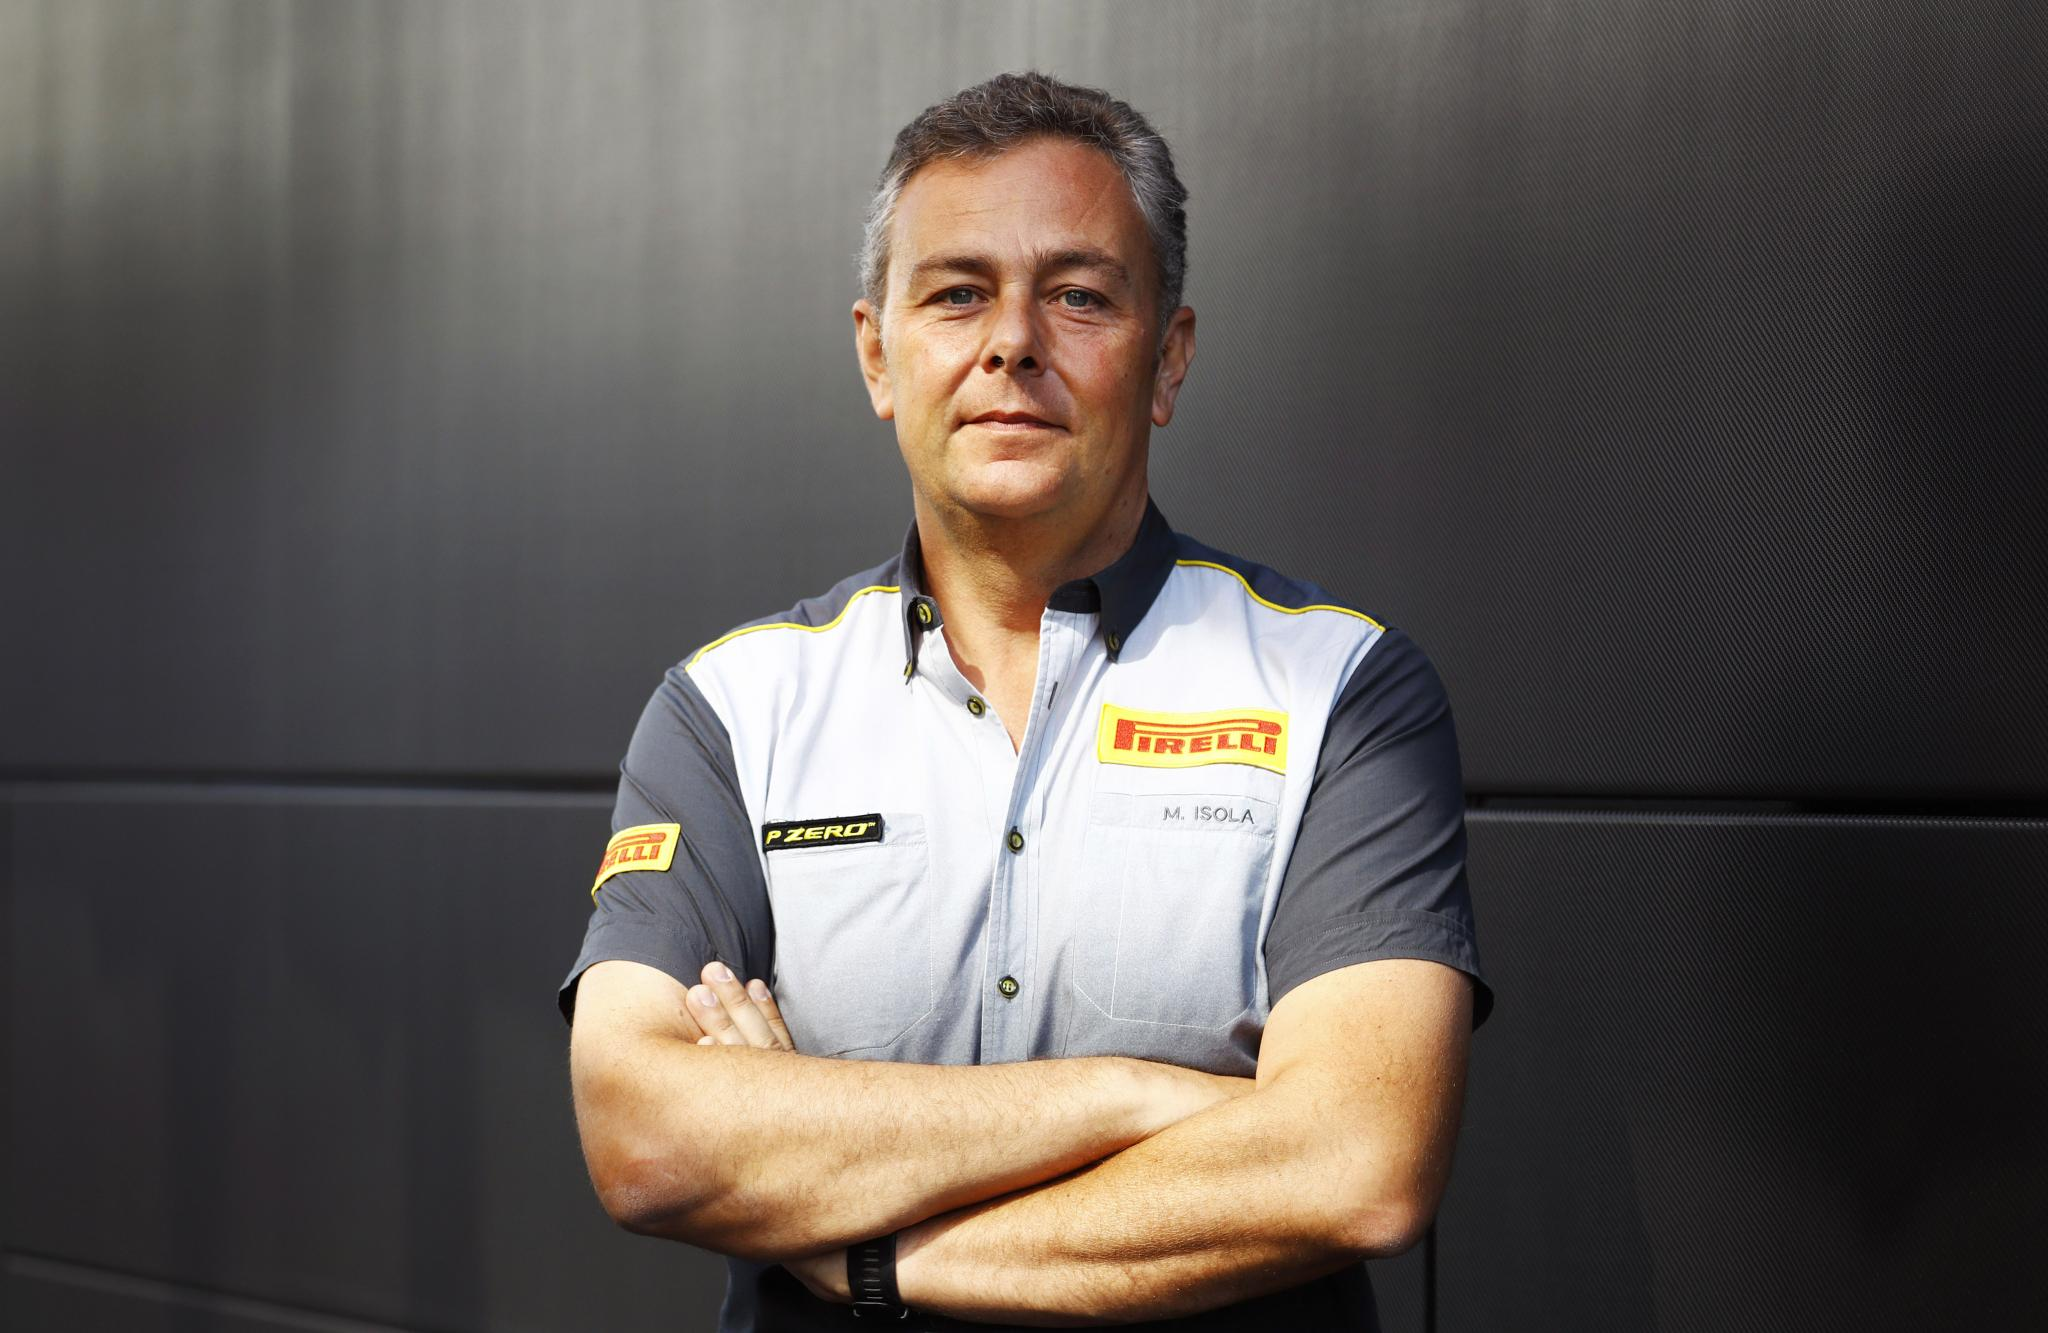 """""""The difference won't be that big"""" - Pirelli F1 boss Mario Isola highlights the difference between 2021 and 2022 tyres"""